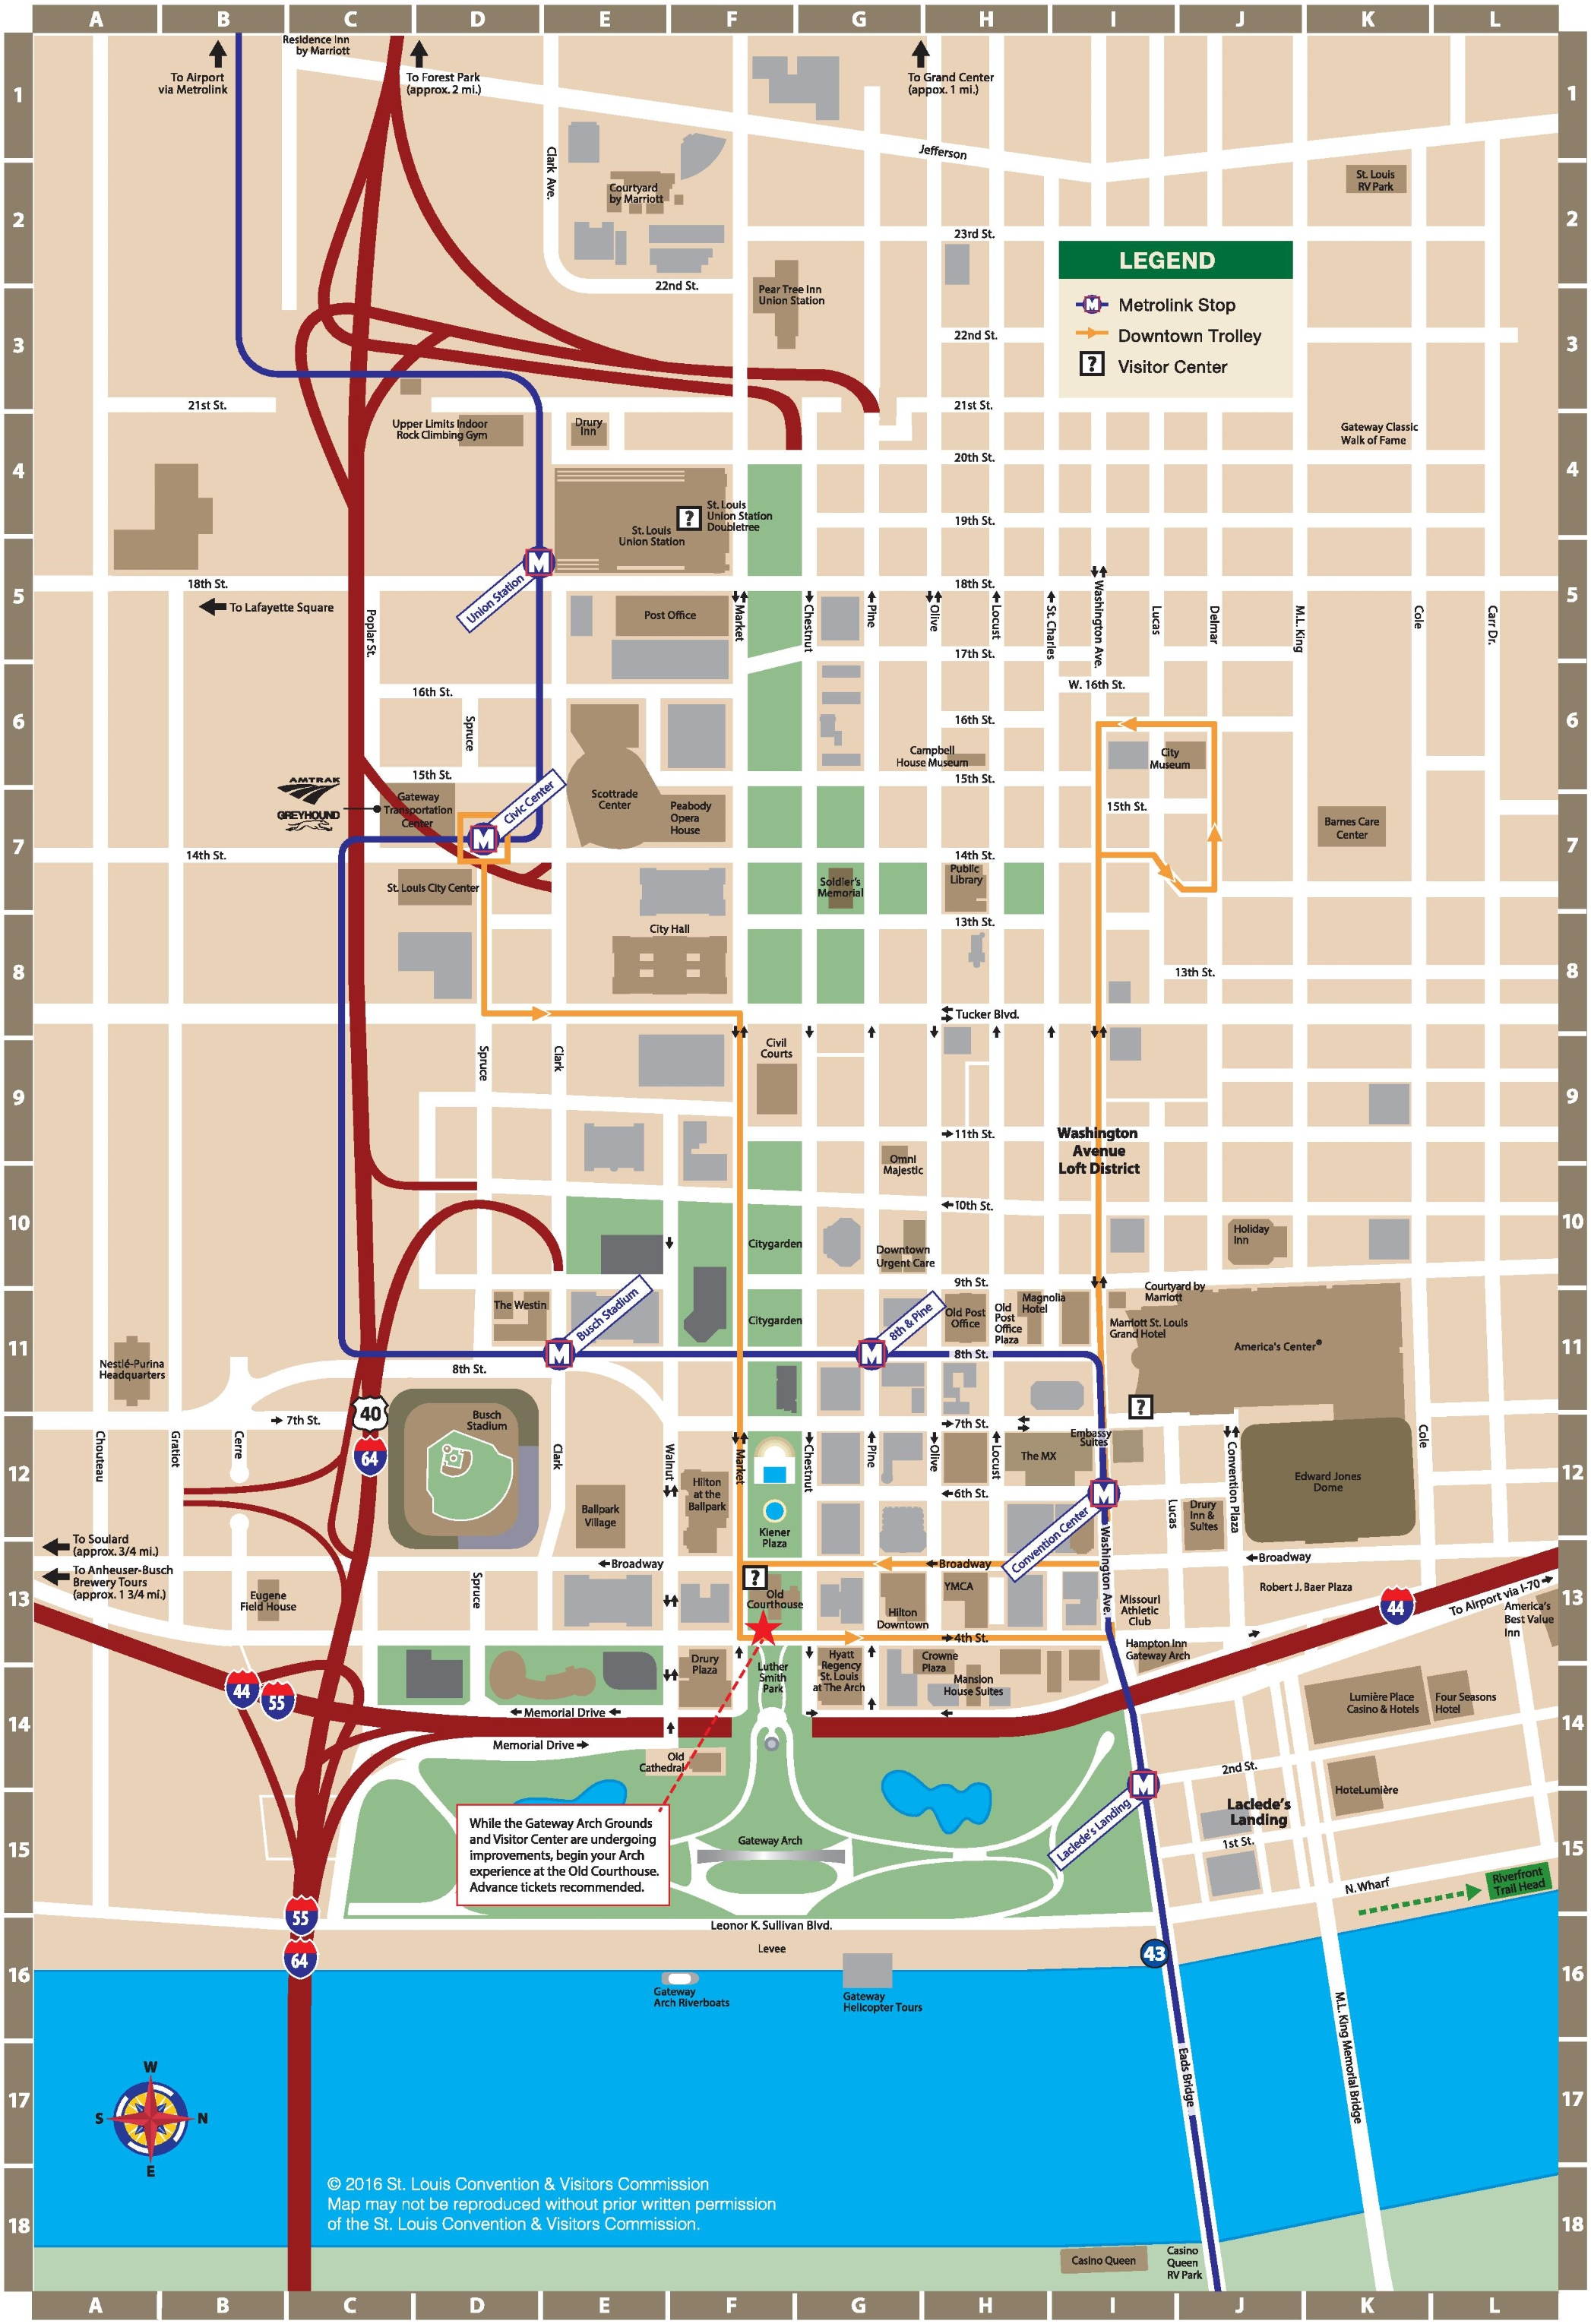 St. Louis downtown map